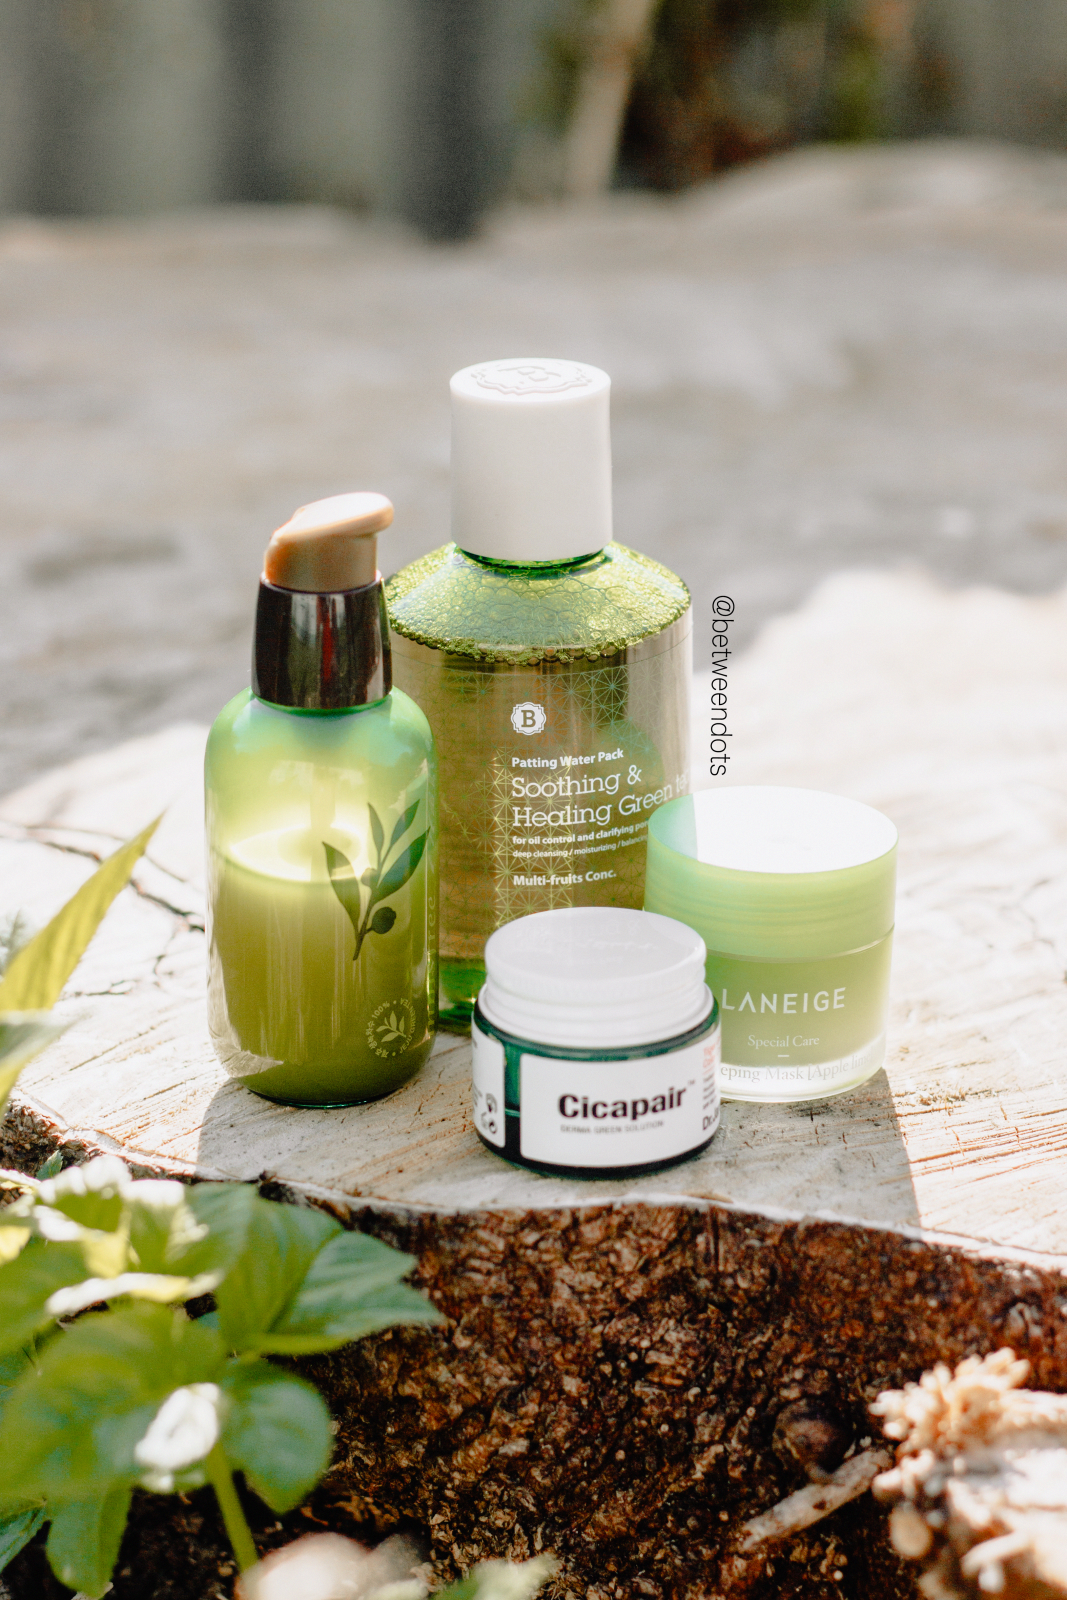 Wholesale Organic Skin Care Products Organicprofessionalskincareproductsestheticians In 2020 Skin Care Organic Skin Care Green Beauty